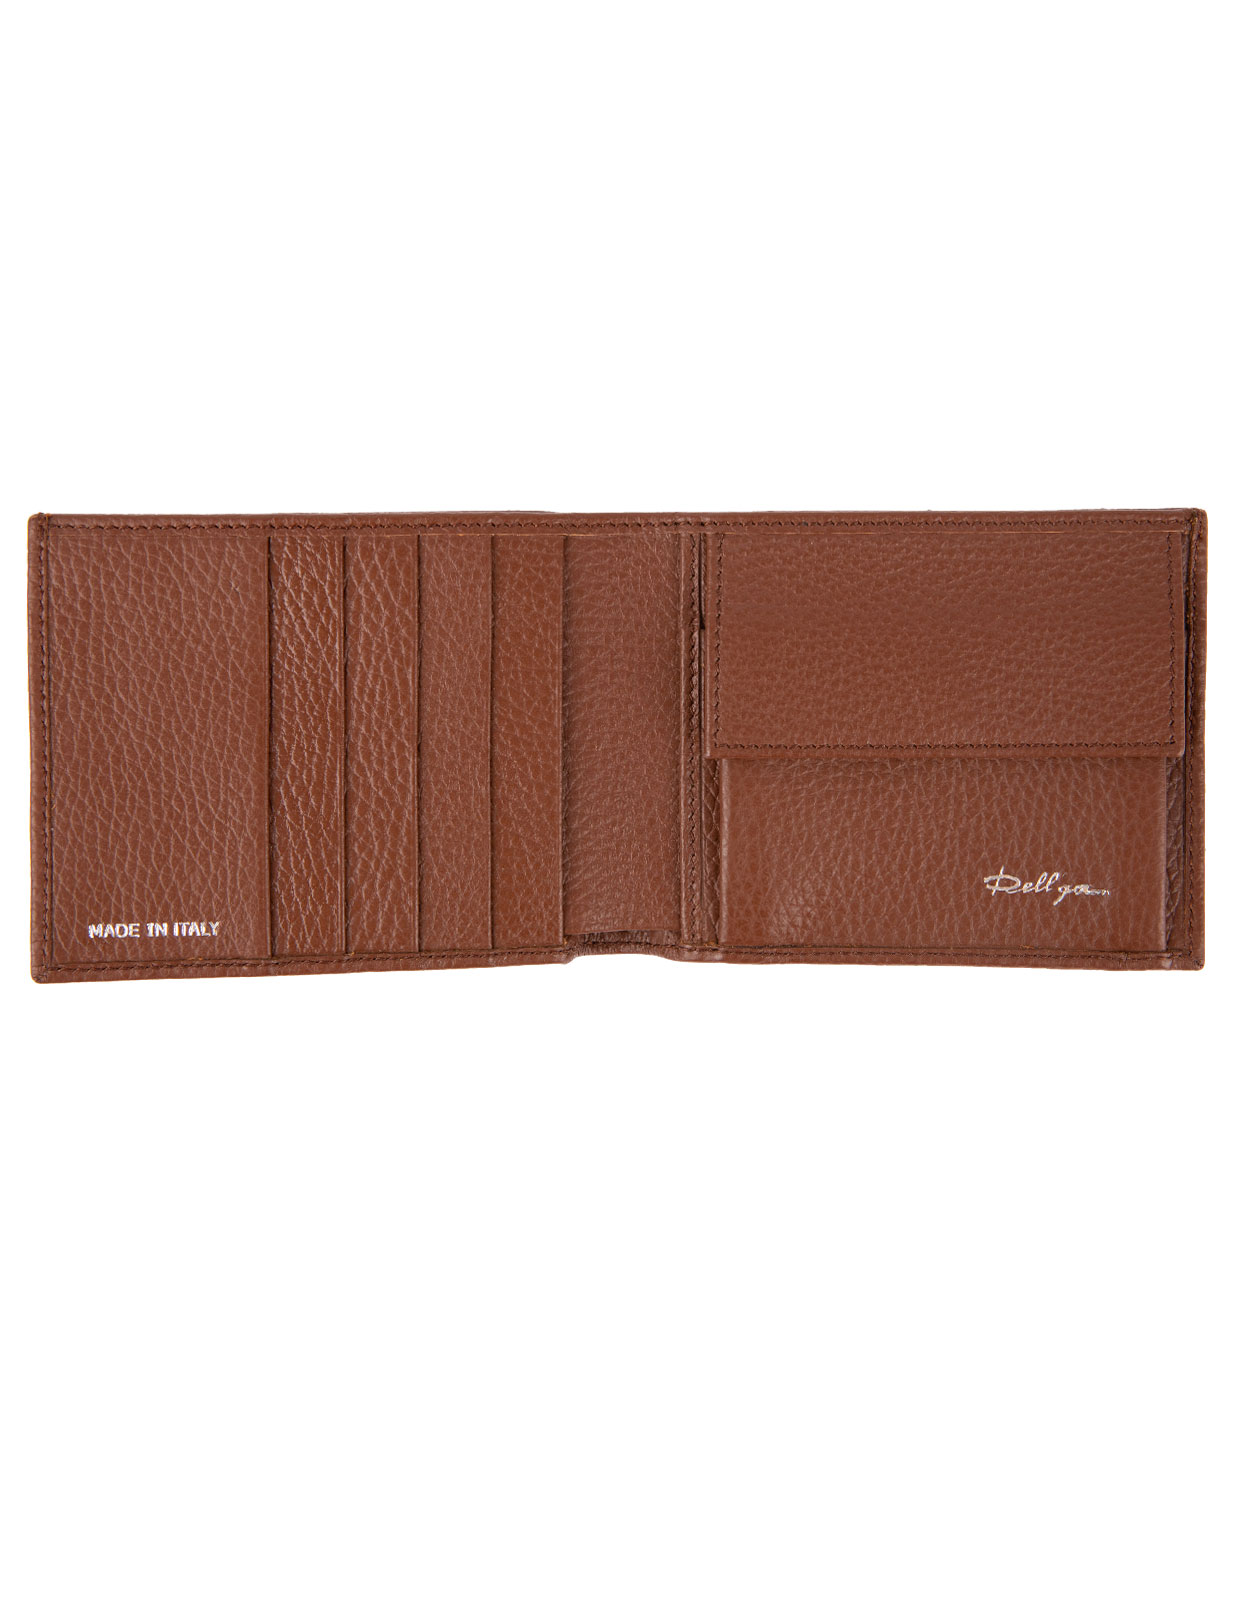 Wallet Tobacco